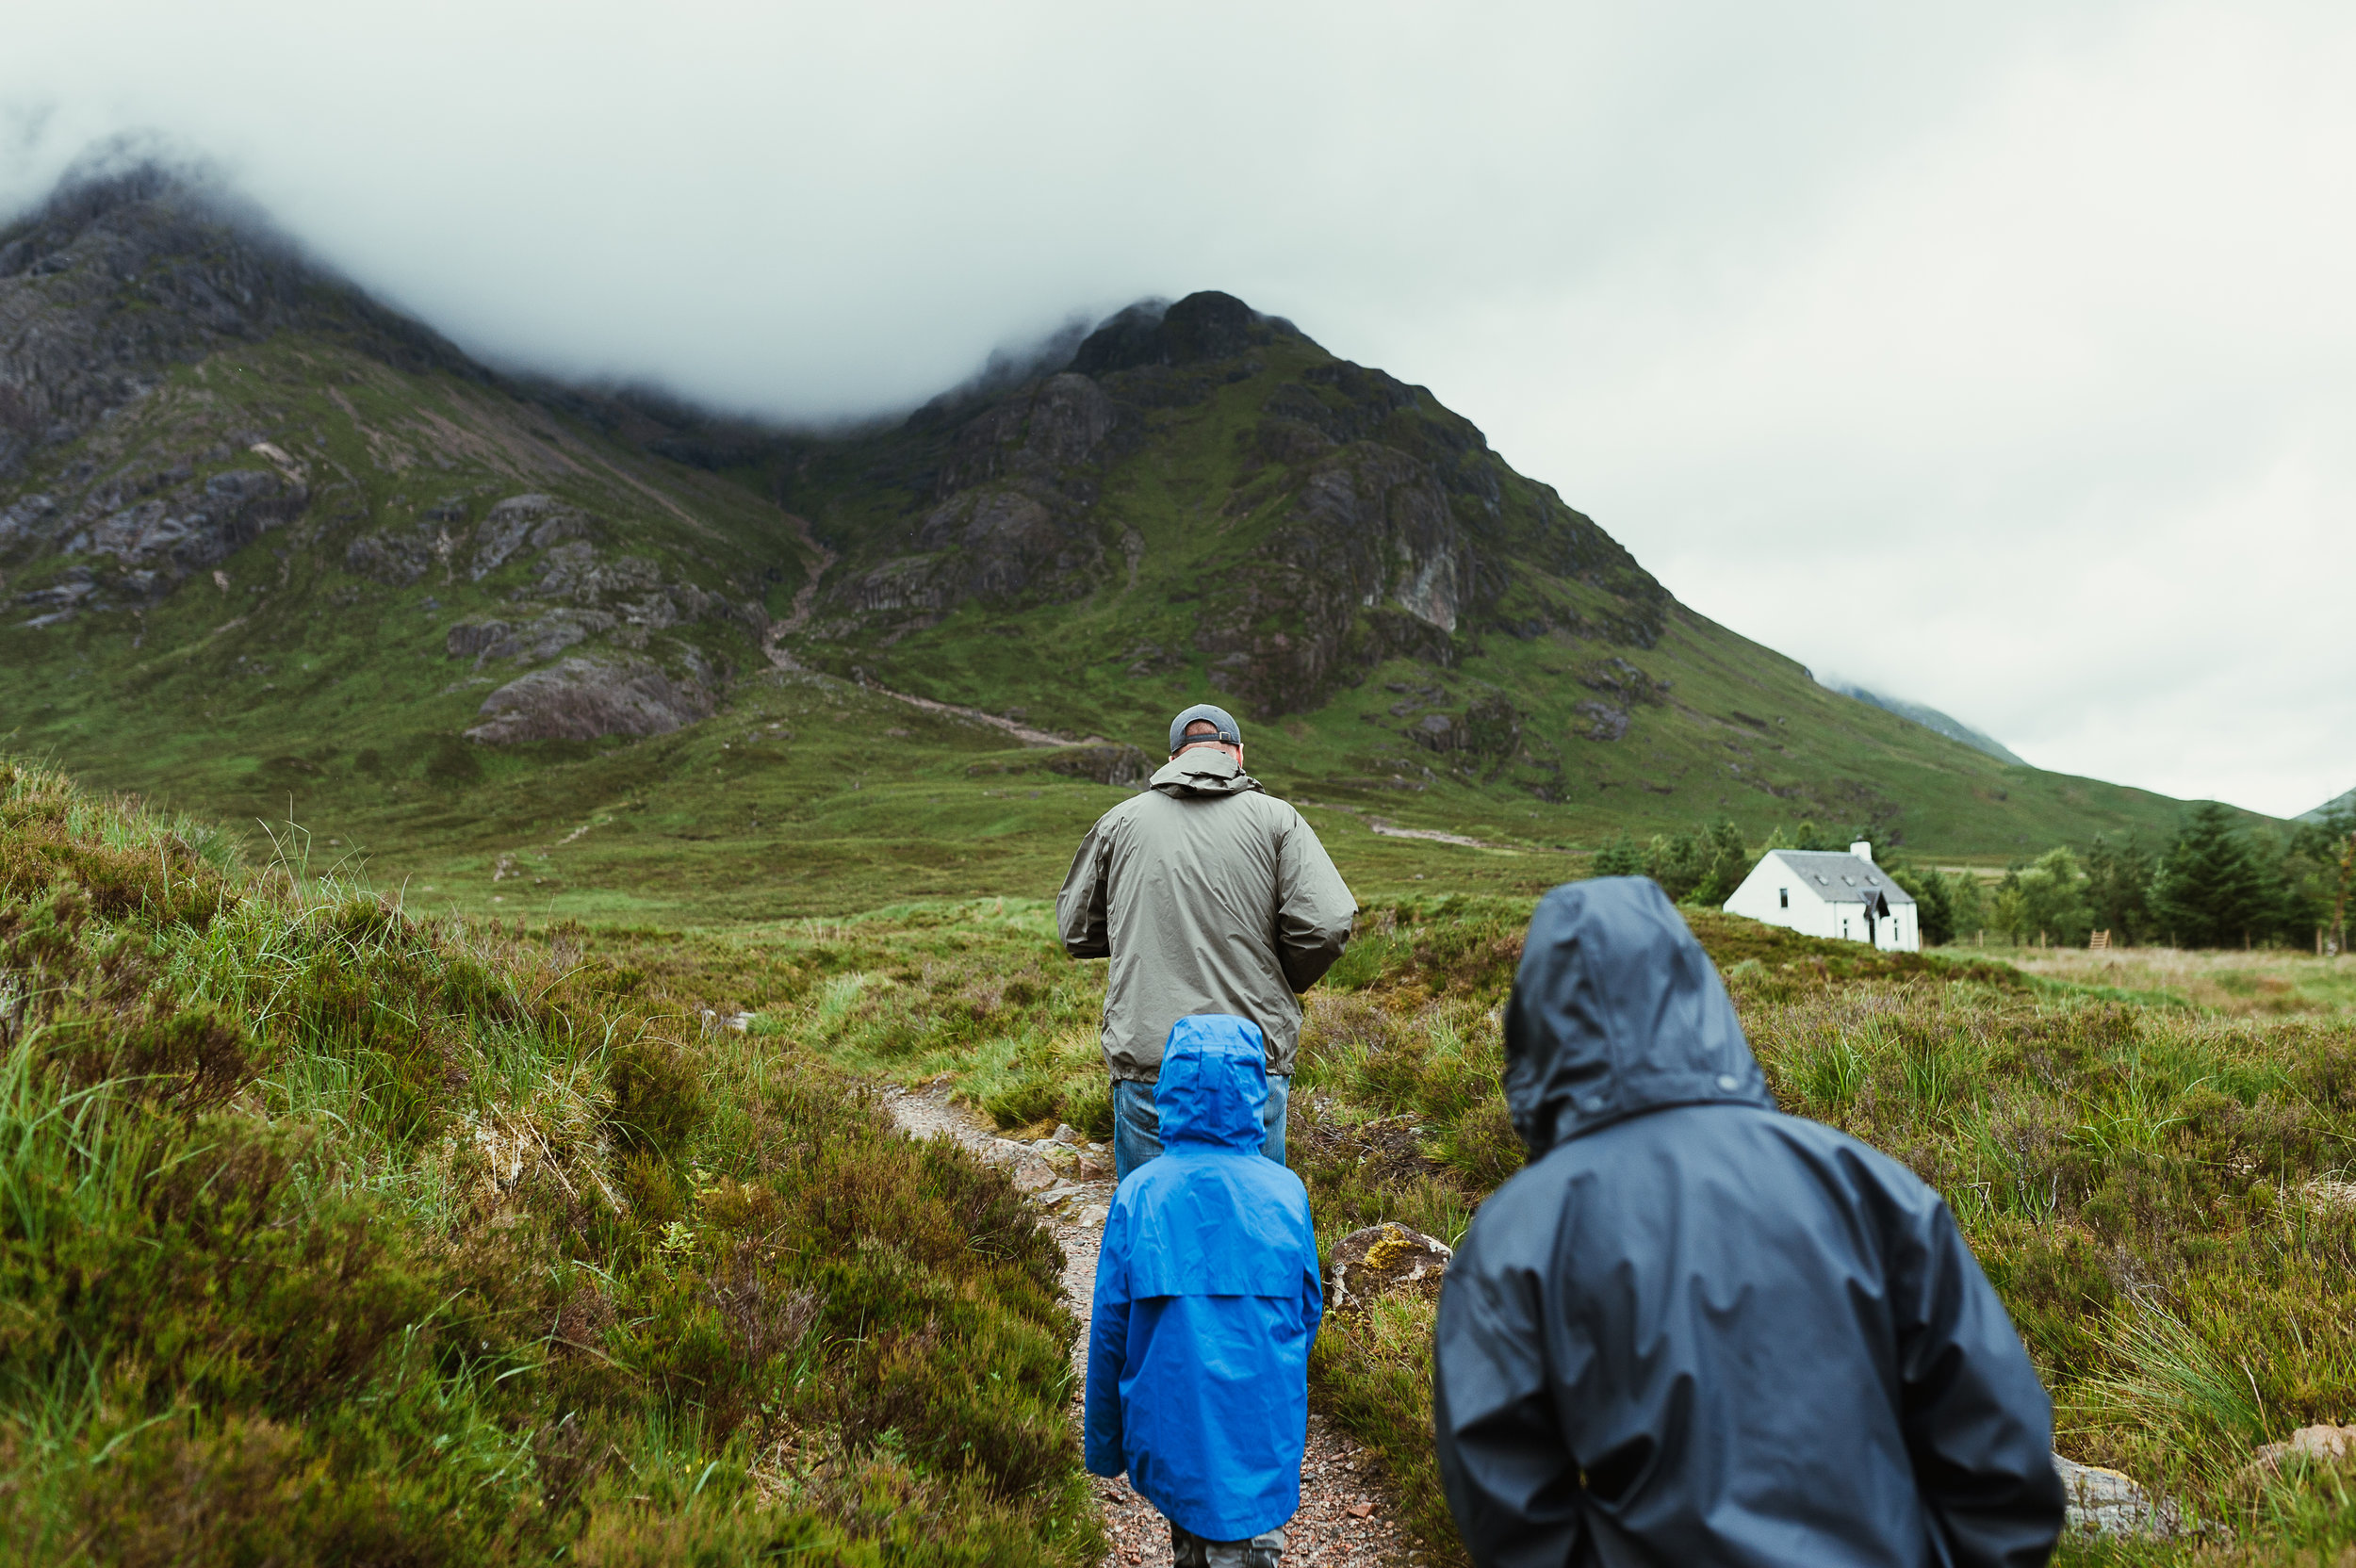 we went almost to the top, where the fog meets munro